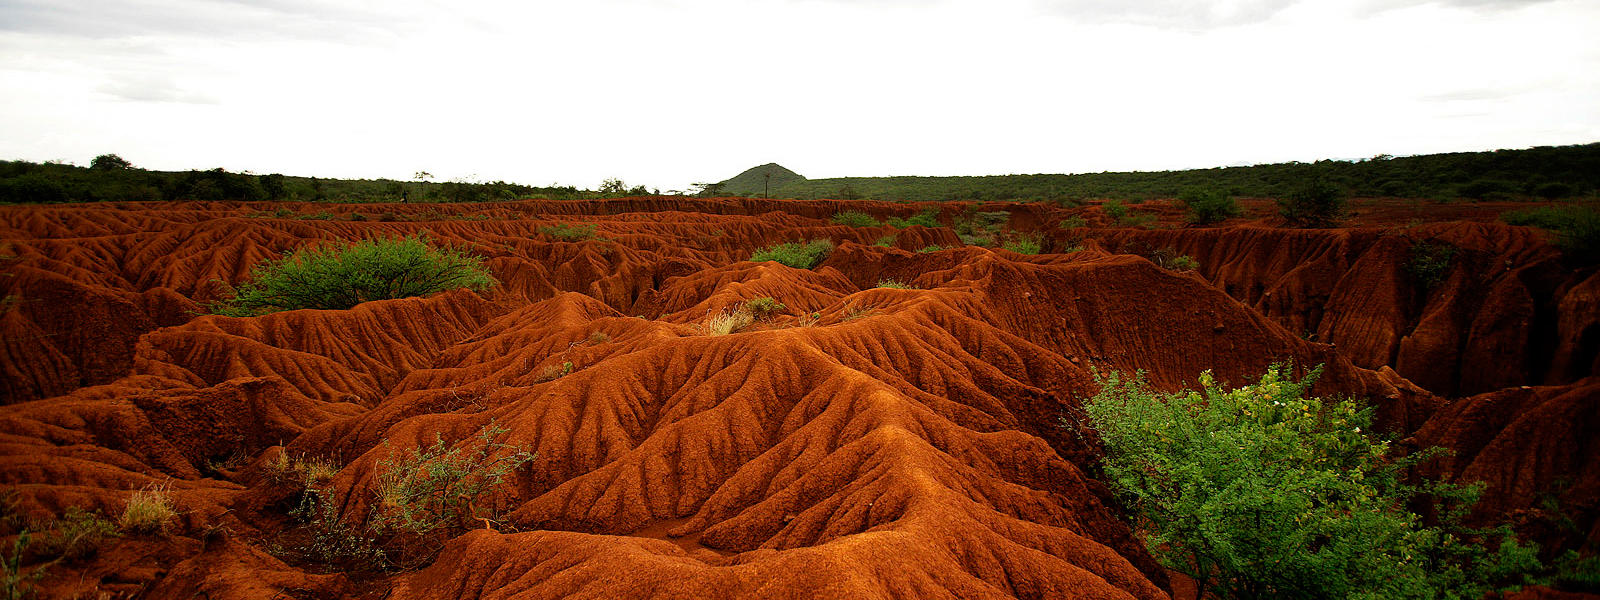 Soil erosion and degradation threats wwf for Soil and water facts